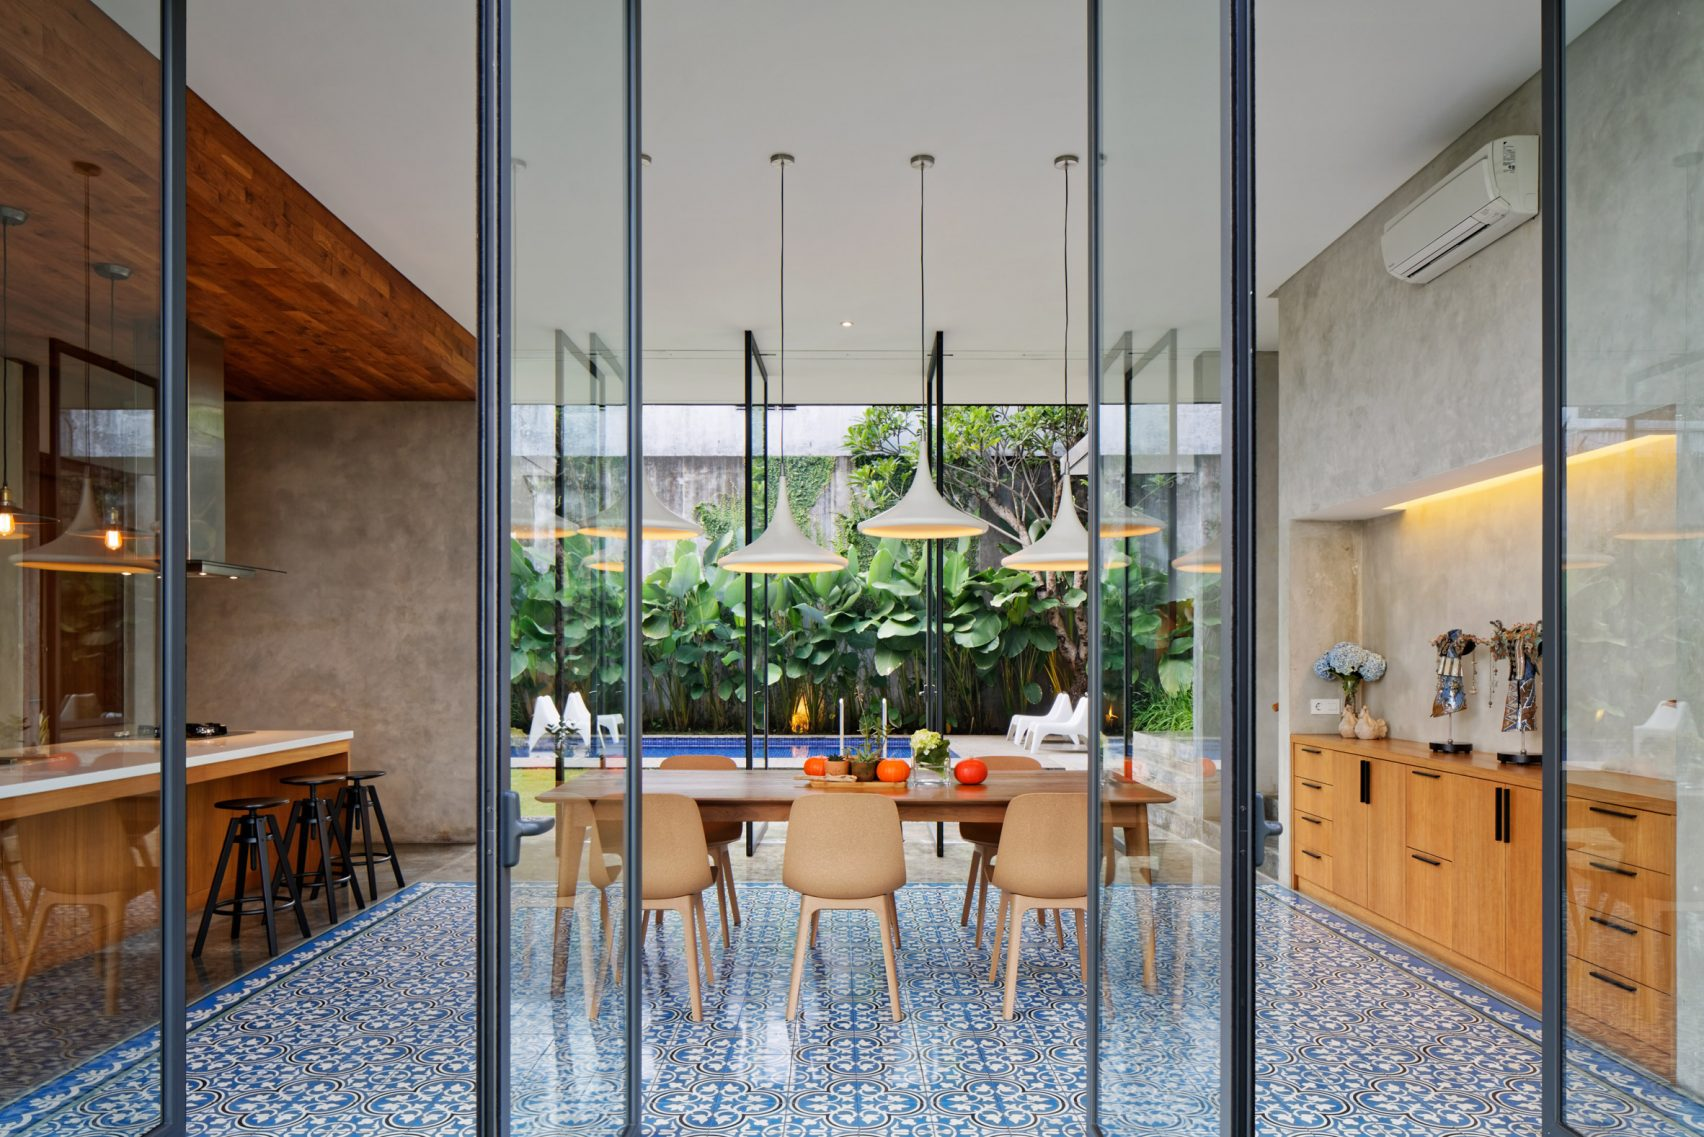 house-inside-outside-tamara-wibowo-architecture-residential-indonesia_dezeen_2364_col_9-1704x1137.jpg